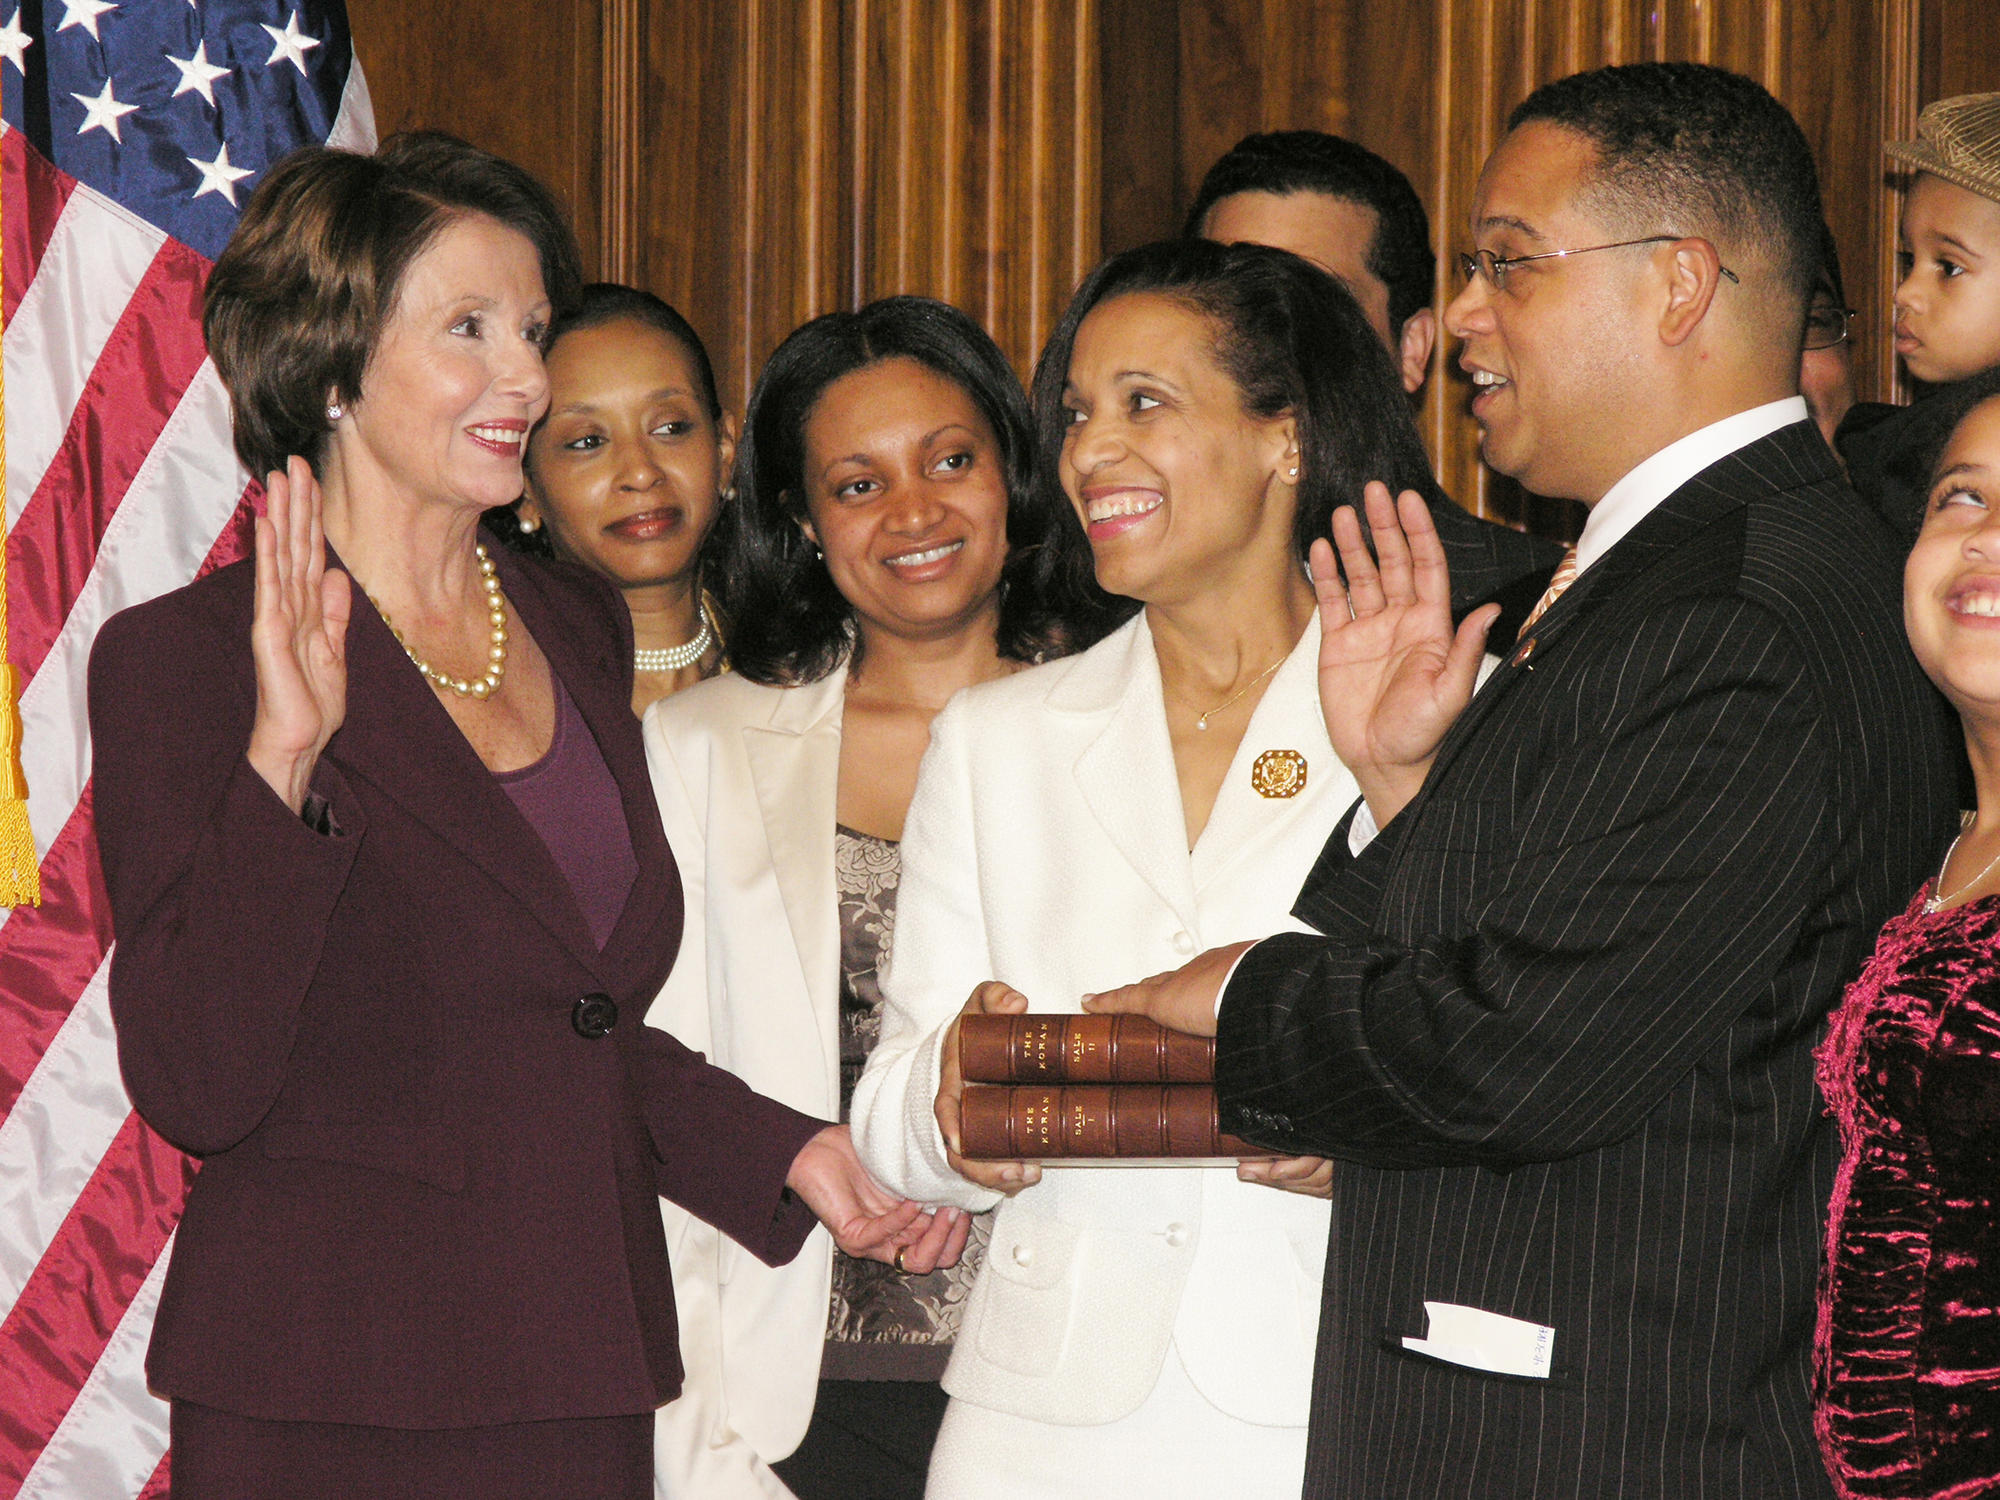 Congressman Keith Ellison swearing in